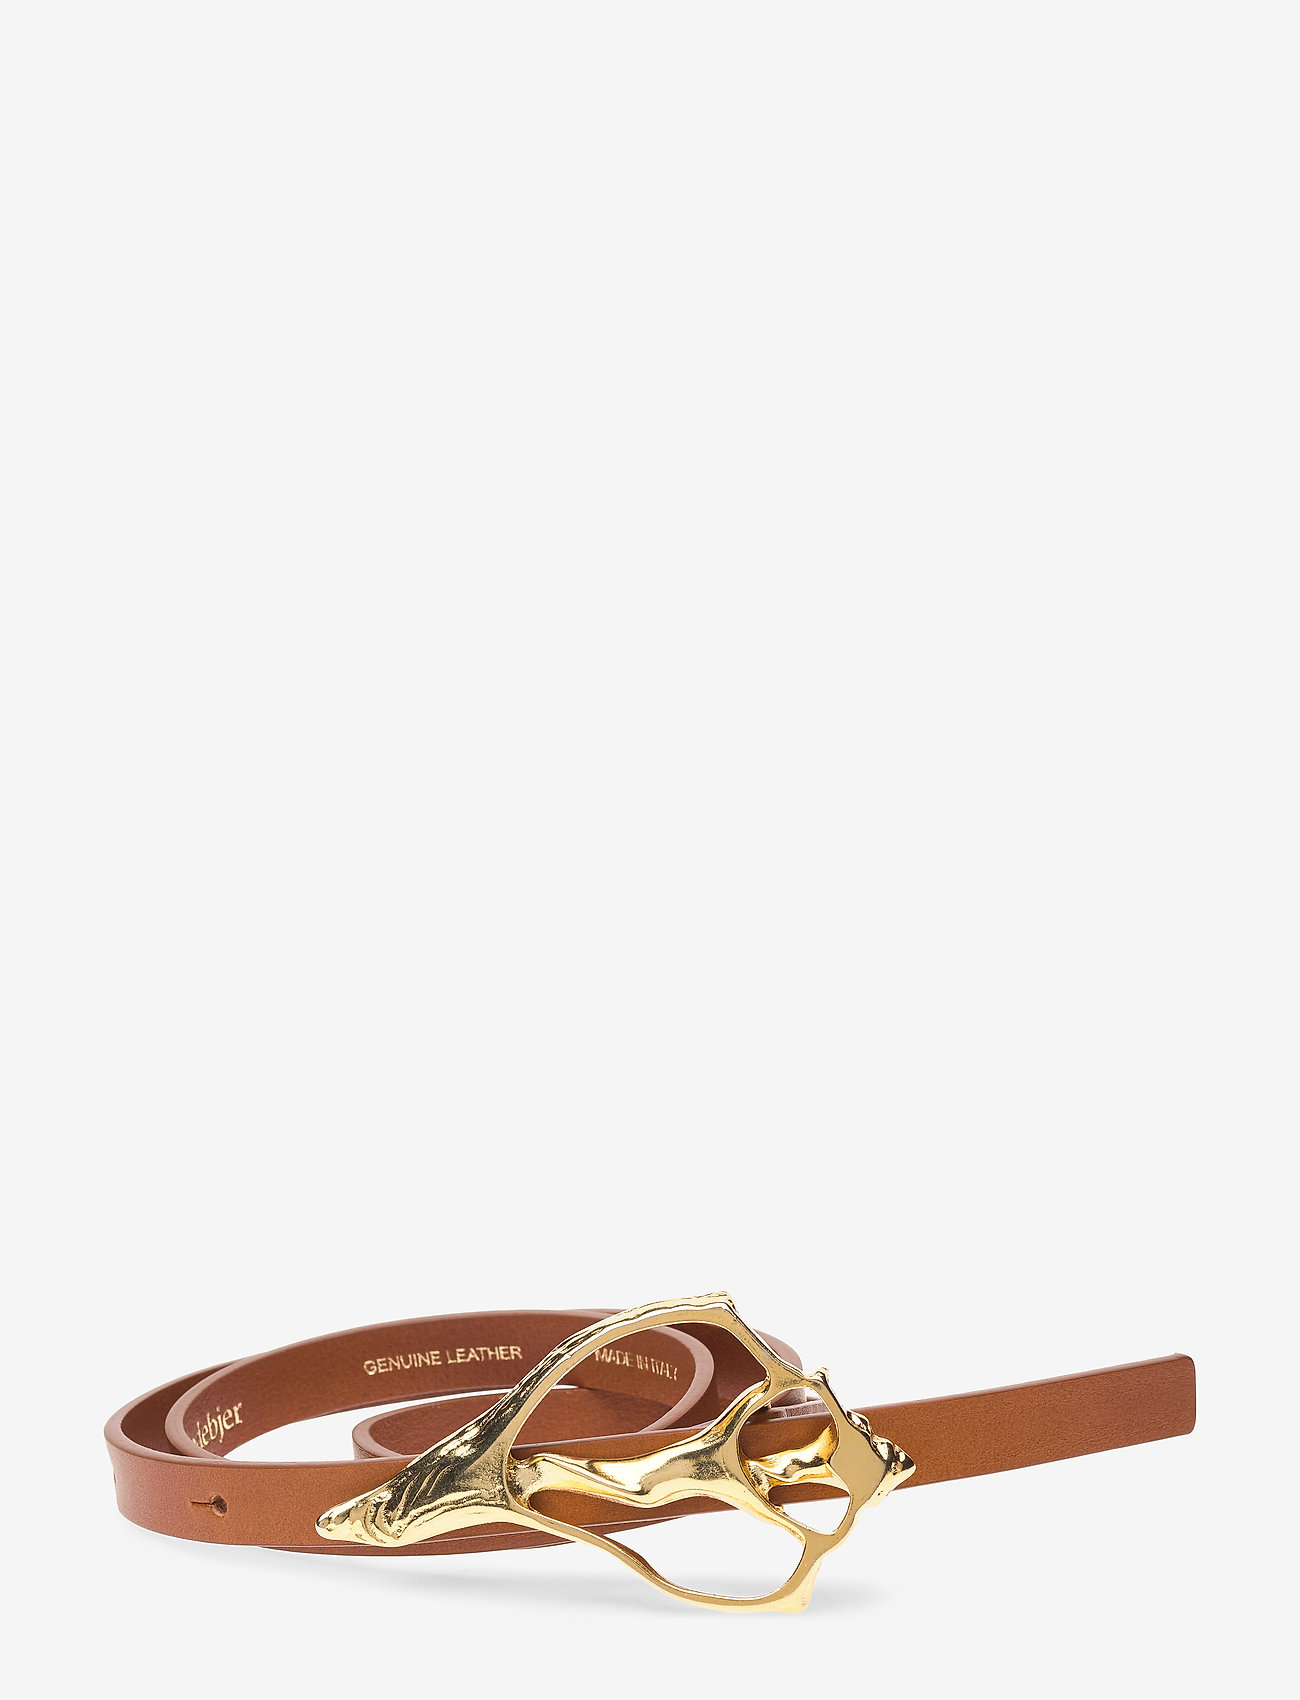 RODEBJER - RODEBJER SHELL - accessoires - brown/gold - 0